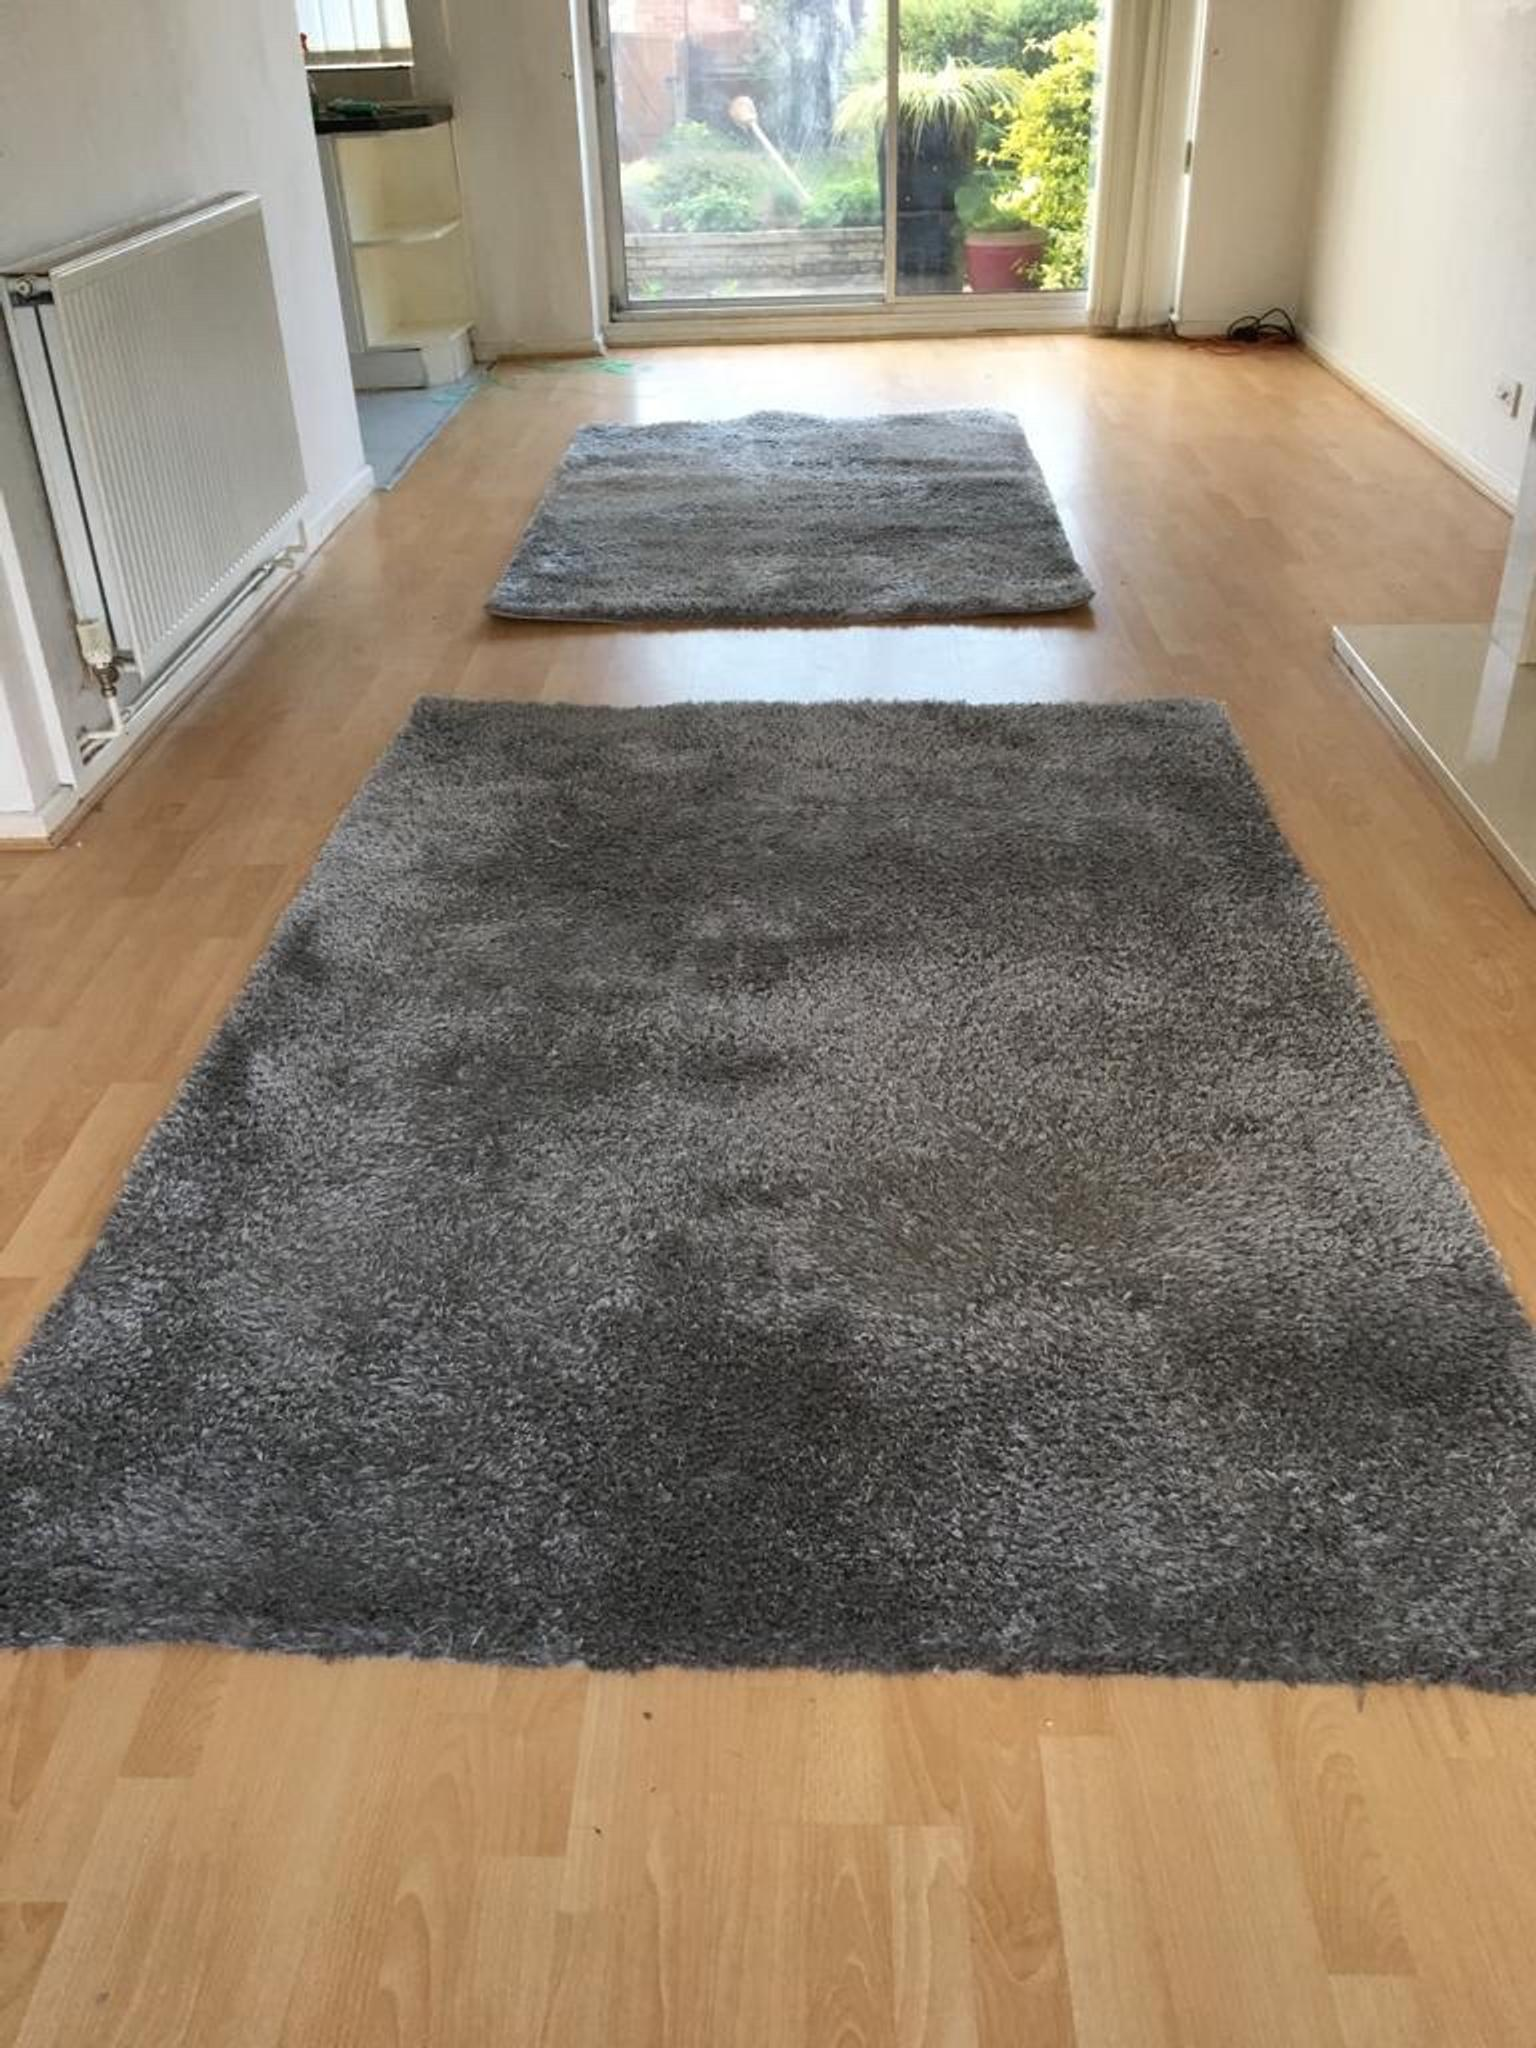 2x JYSK Grey Birk Rugs in Coventry for